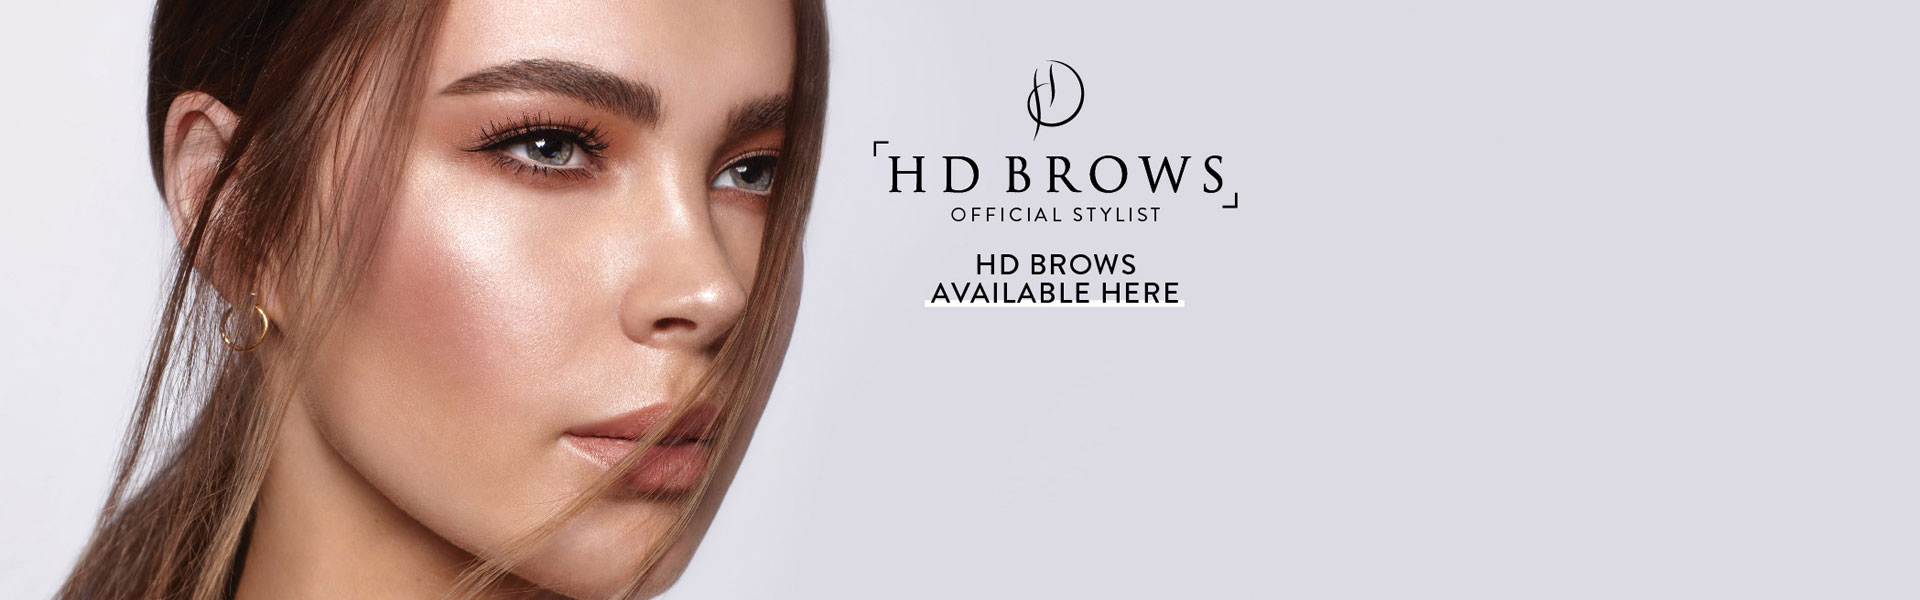 Sara Victoria Brows Beauty Calne Chippenham Wiltshire